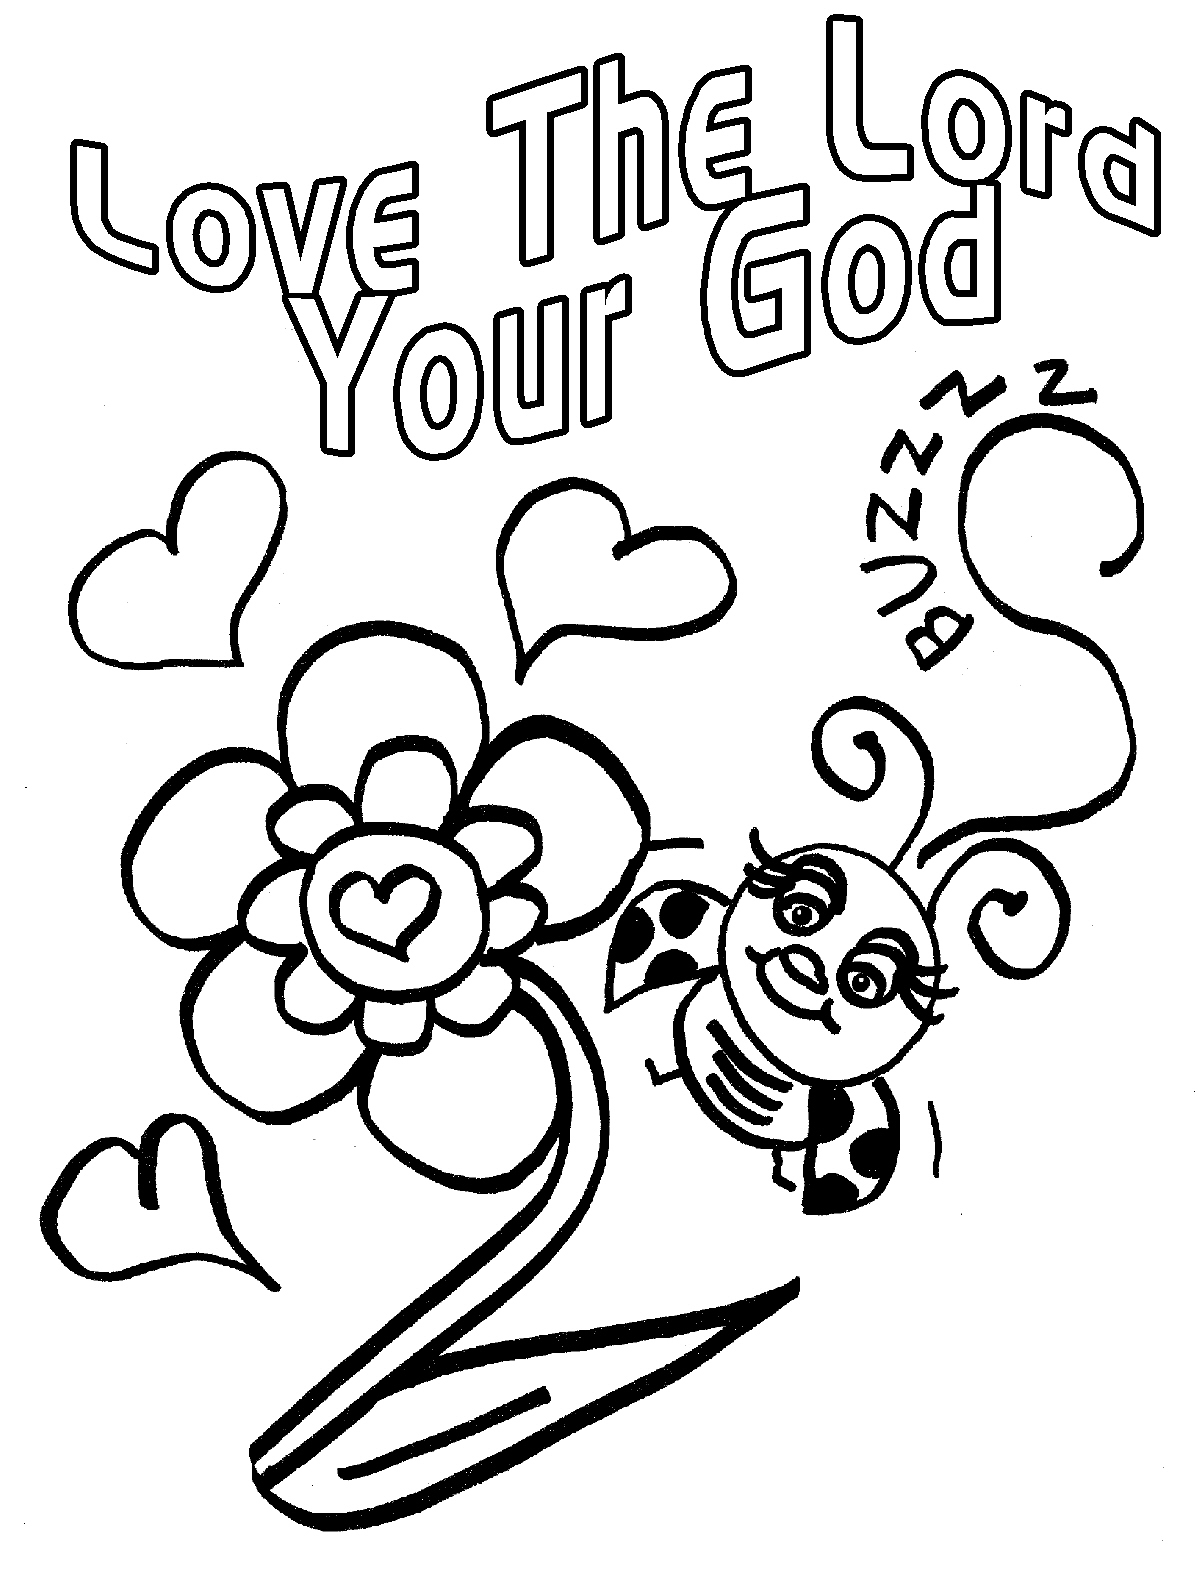 god our saviour coloring pages - photo#21